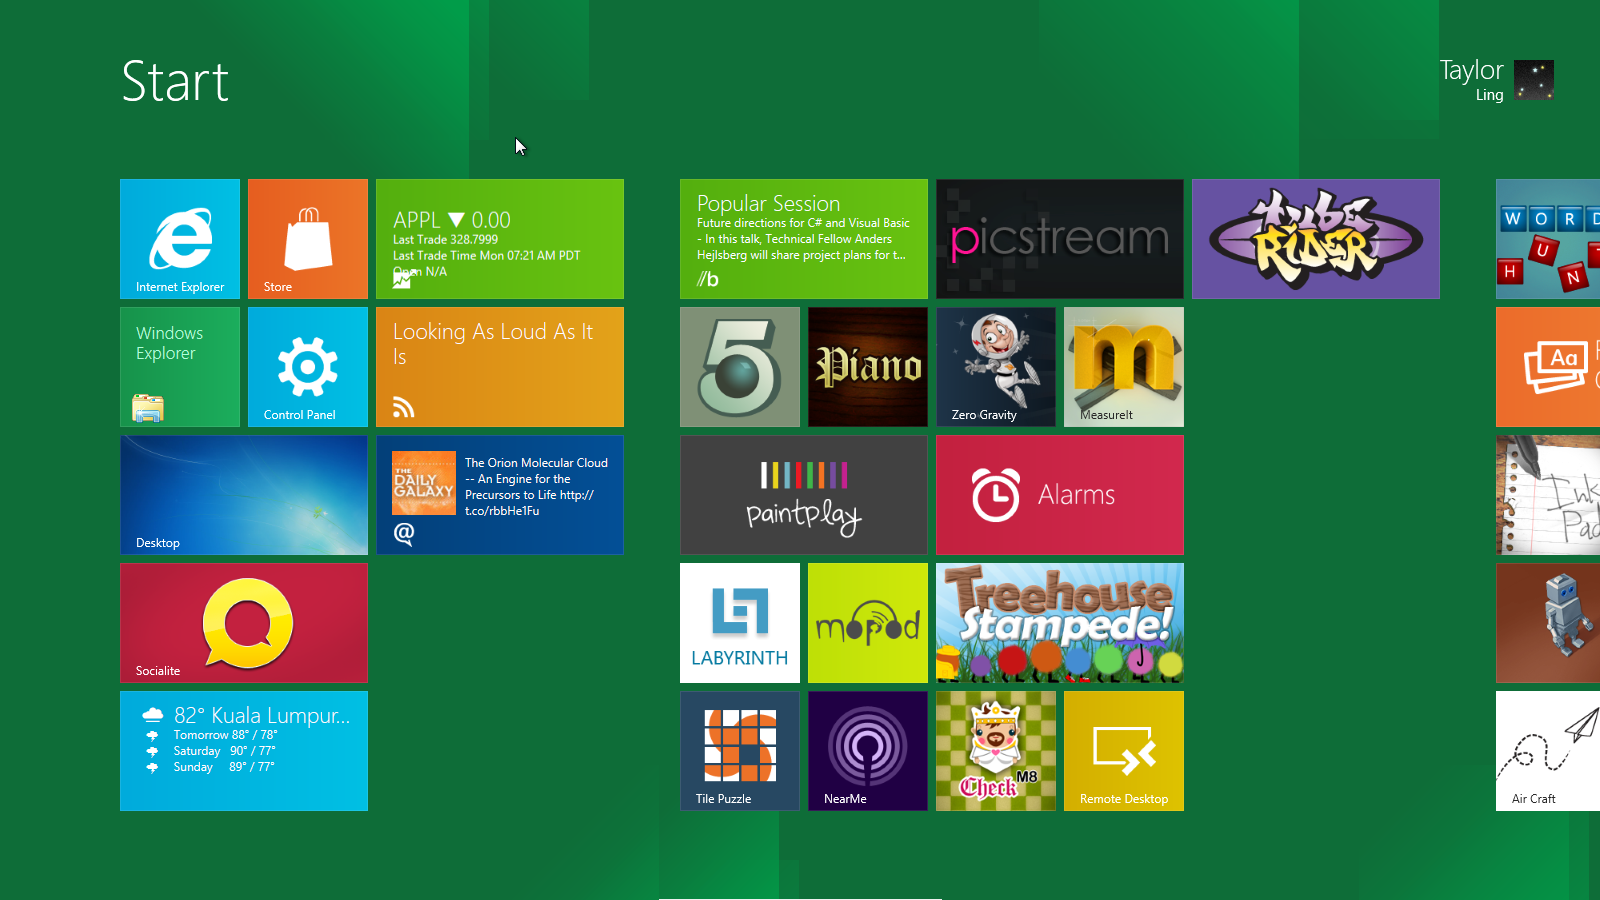 windows 8 start screen Full Resolution Windows 8 Developer Preview in VirtualBox [How To]